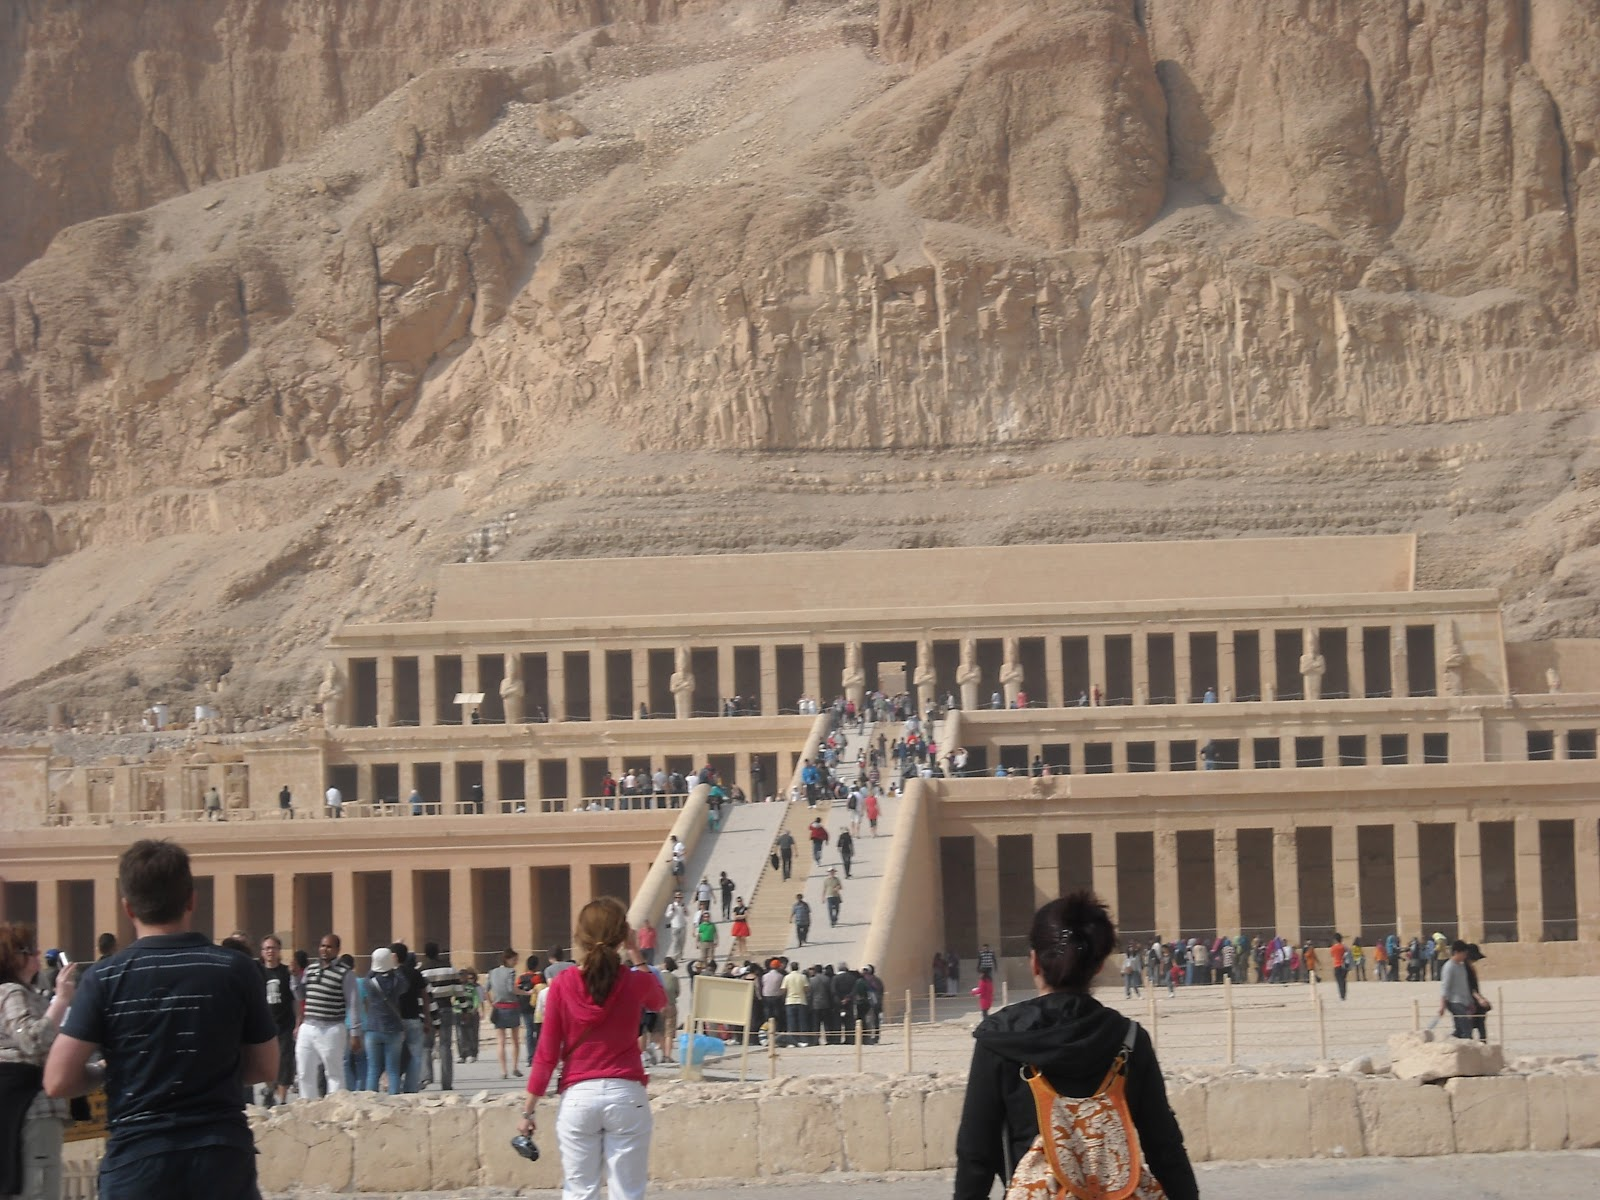 ... as well as Hatshepsut's Temple, the most famous female pharaoh- look at ...